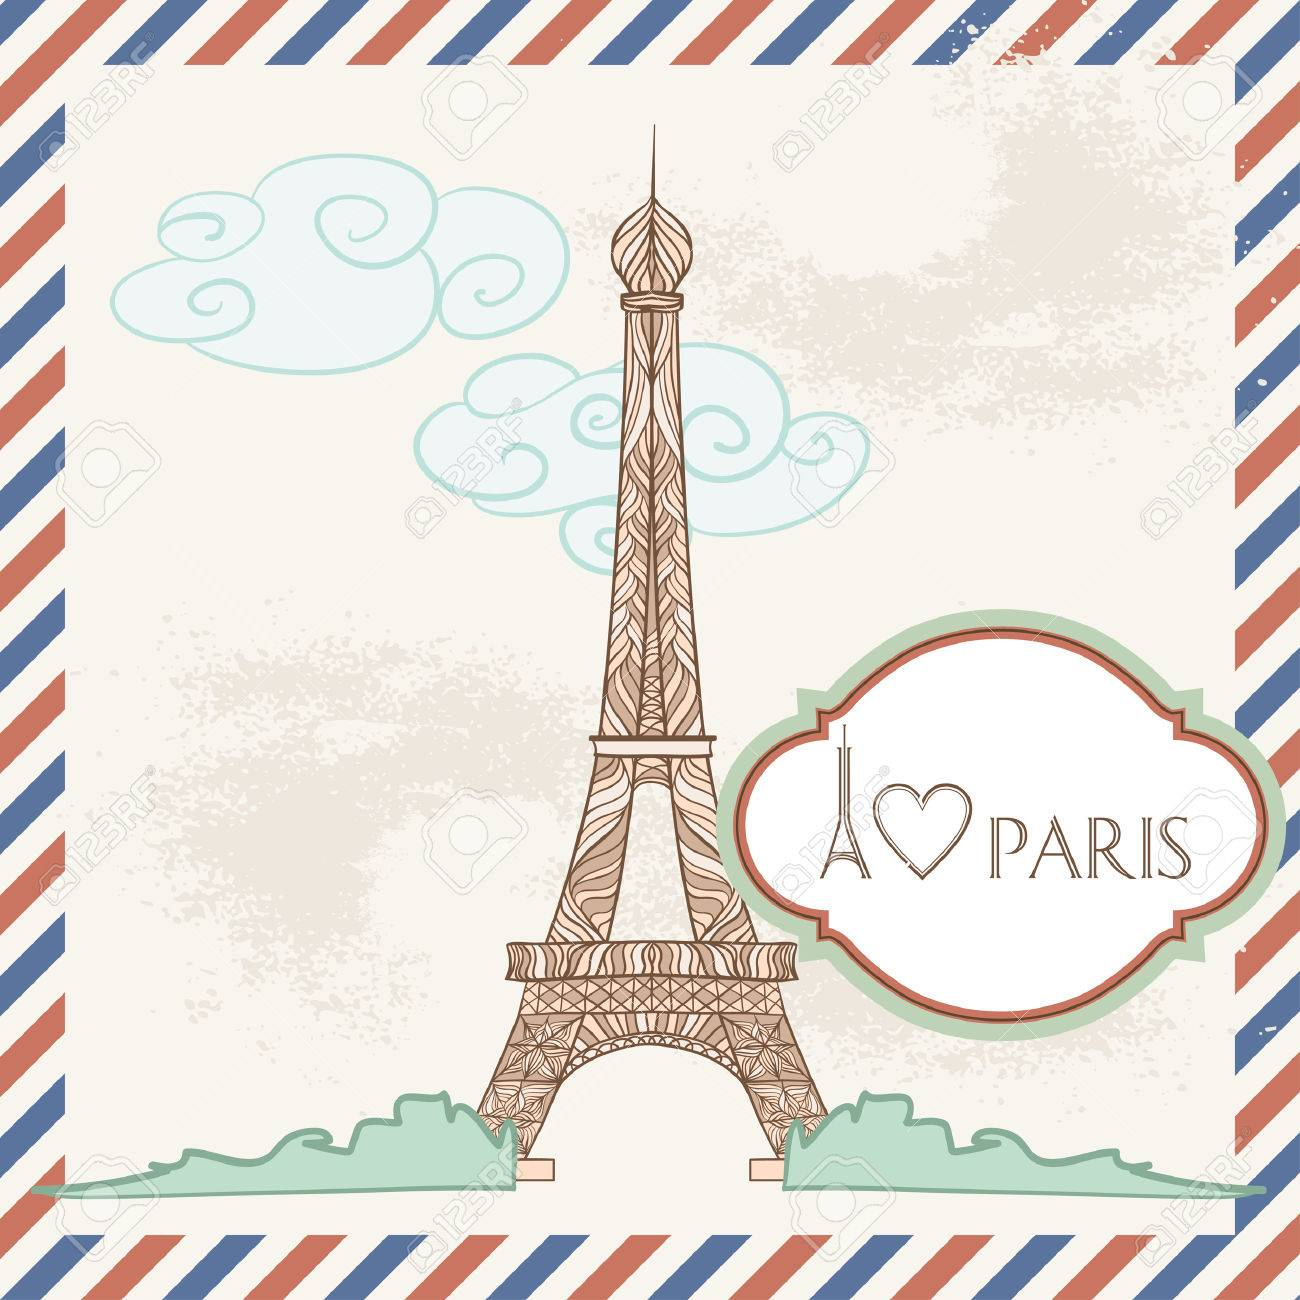 vector postcard with france image decorative eiffel tower and frame with text stock vector 24661312 - Eiffel Tower Picture Frame